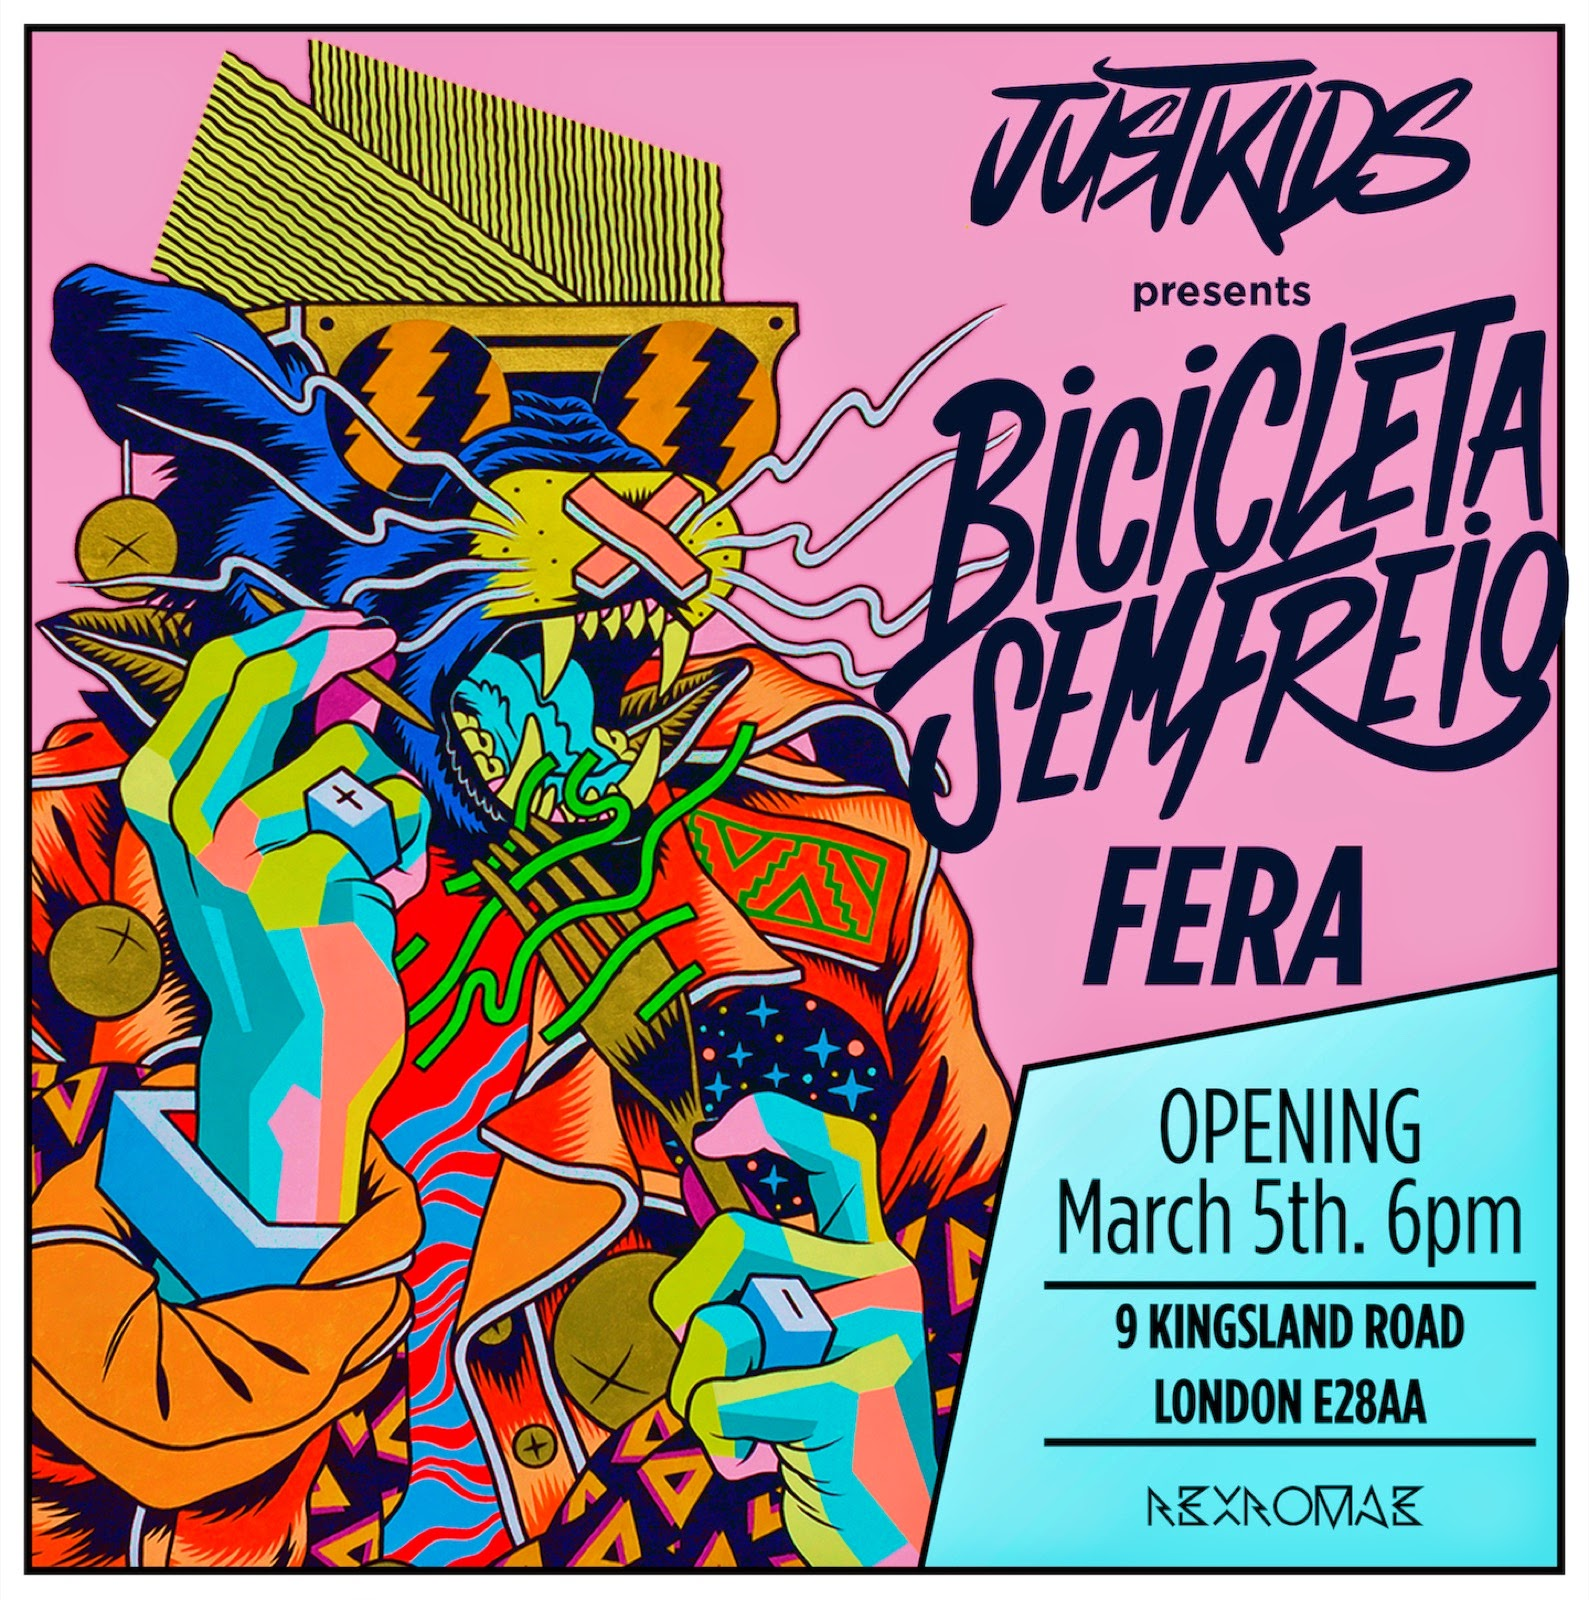 "Next week in Shoreditch, London, JustKids will hold a pop-up exhibition in London showcasing the artworks of internationally famed Brazilian duo of illustrators Bicicleta Sem Freio (""Bicycle Without Brake"")."